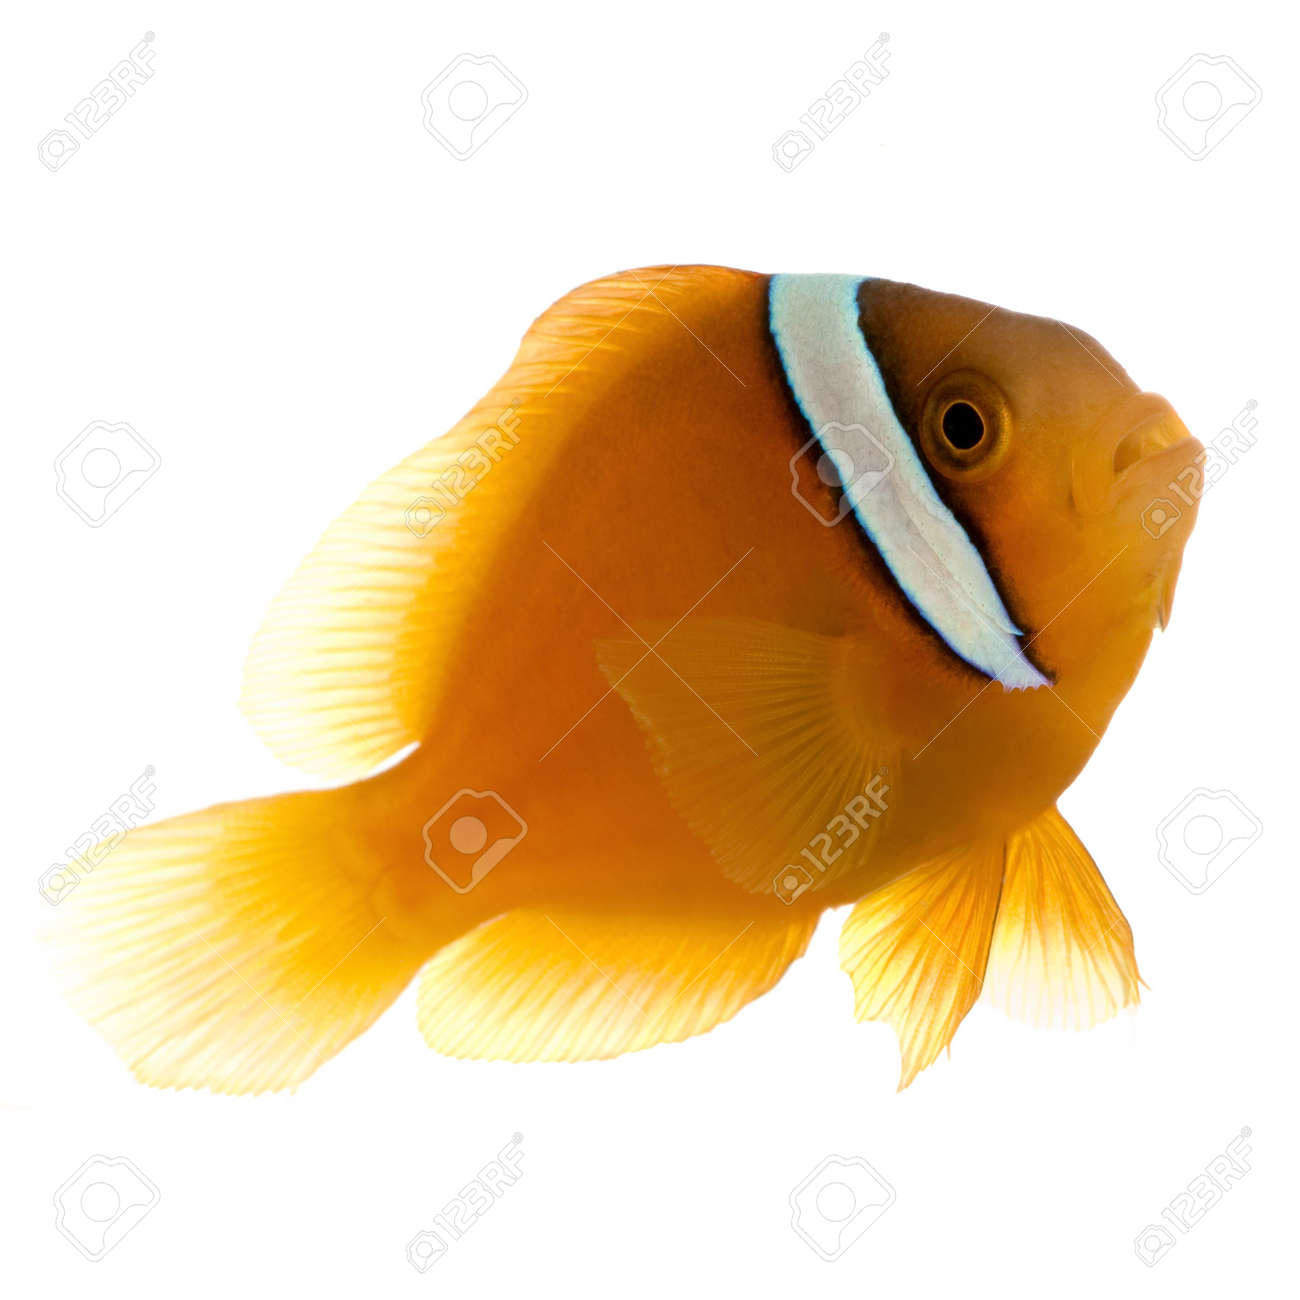 Saddle anemonefish - Amphiprion ephippium in front of a white background Stock Photo - 2113017